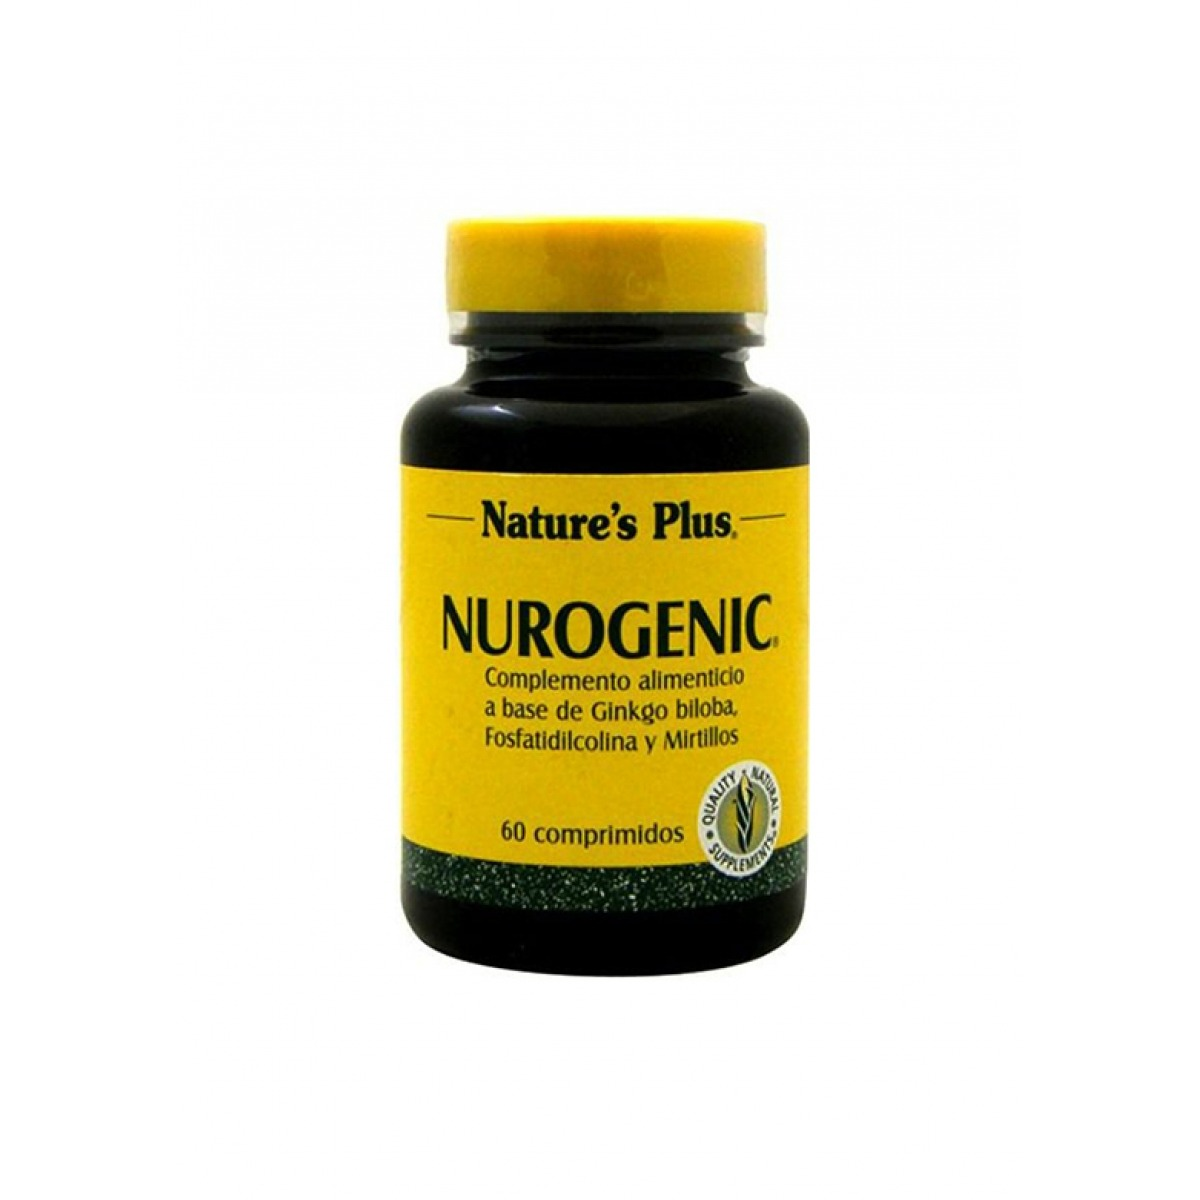 NATURES PLUS NUROGENIC 60 COMPRIMIDOS.